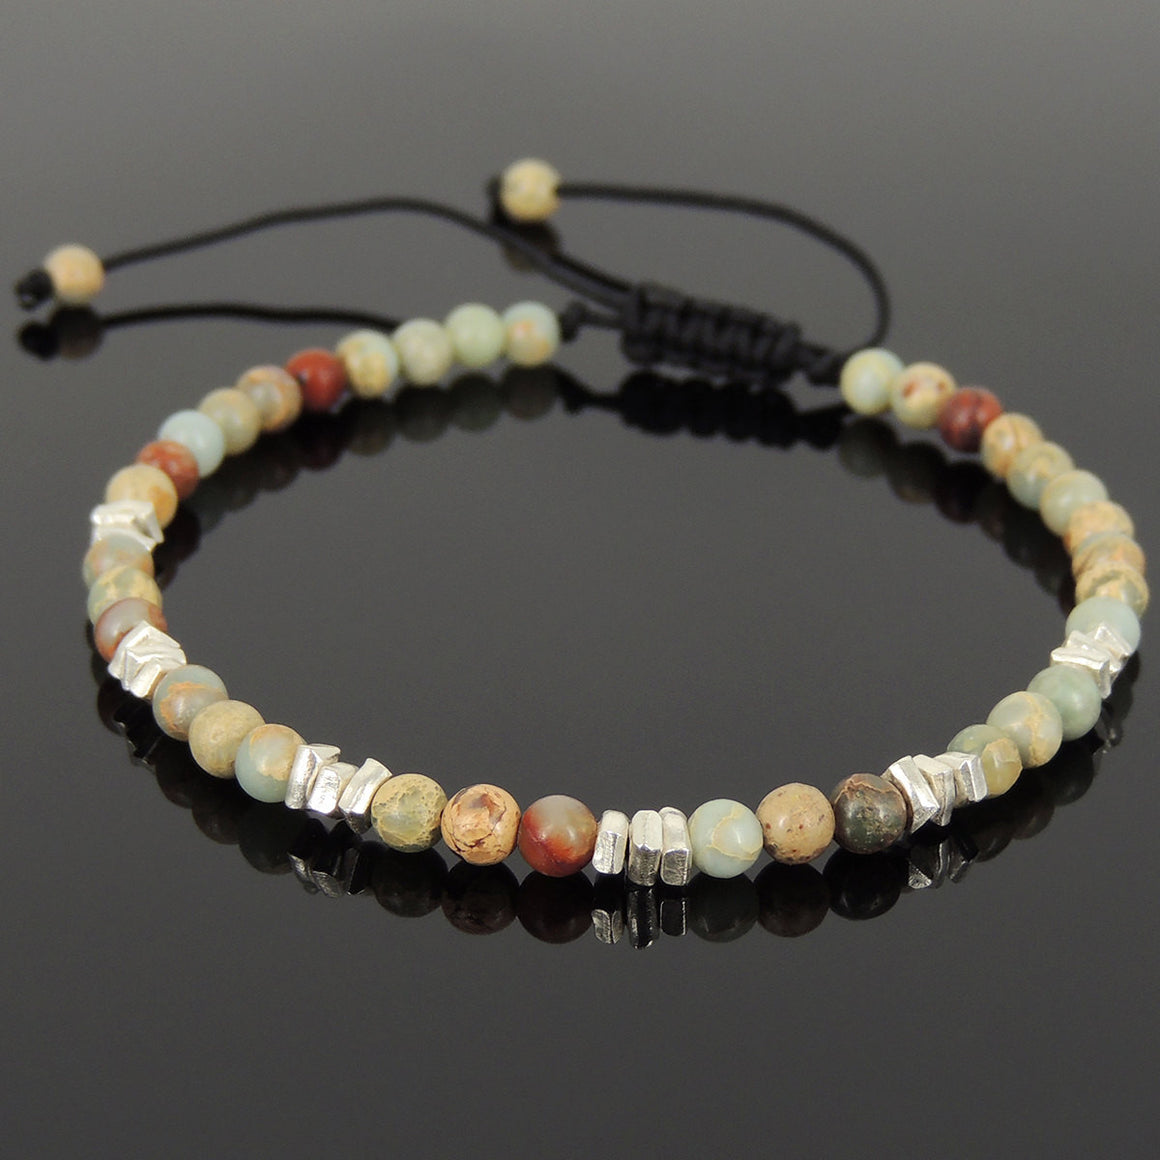 4mm Jasper Stone Adjustable Braided Gemstone Bracelet with S925 Sterling Silver Nugget Spacers - Handmade by Gem & Silver BR949